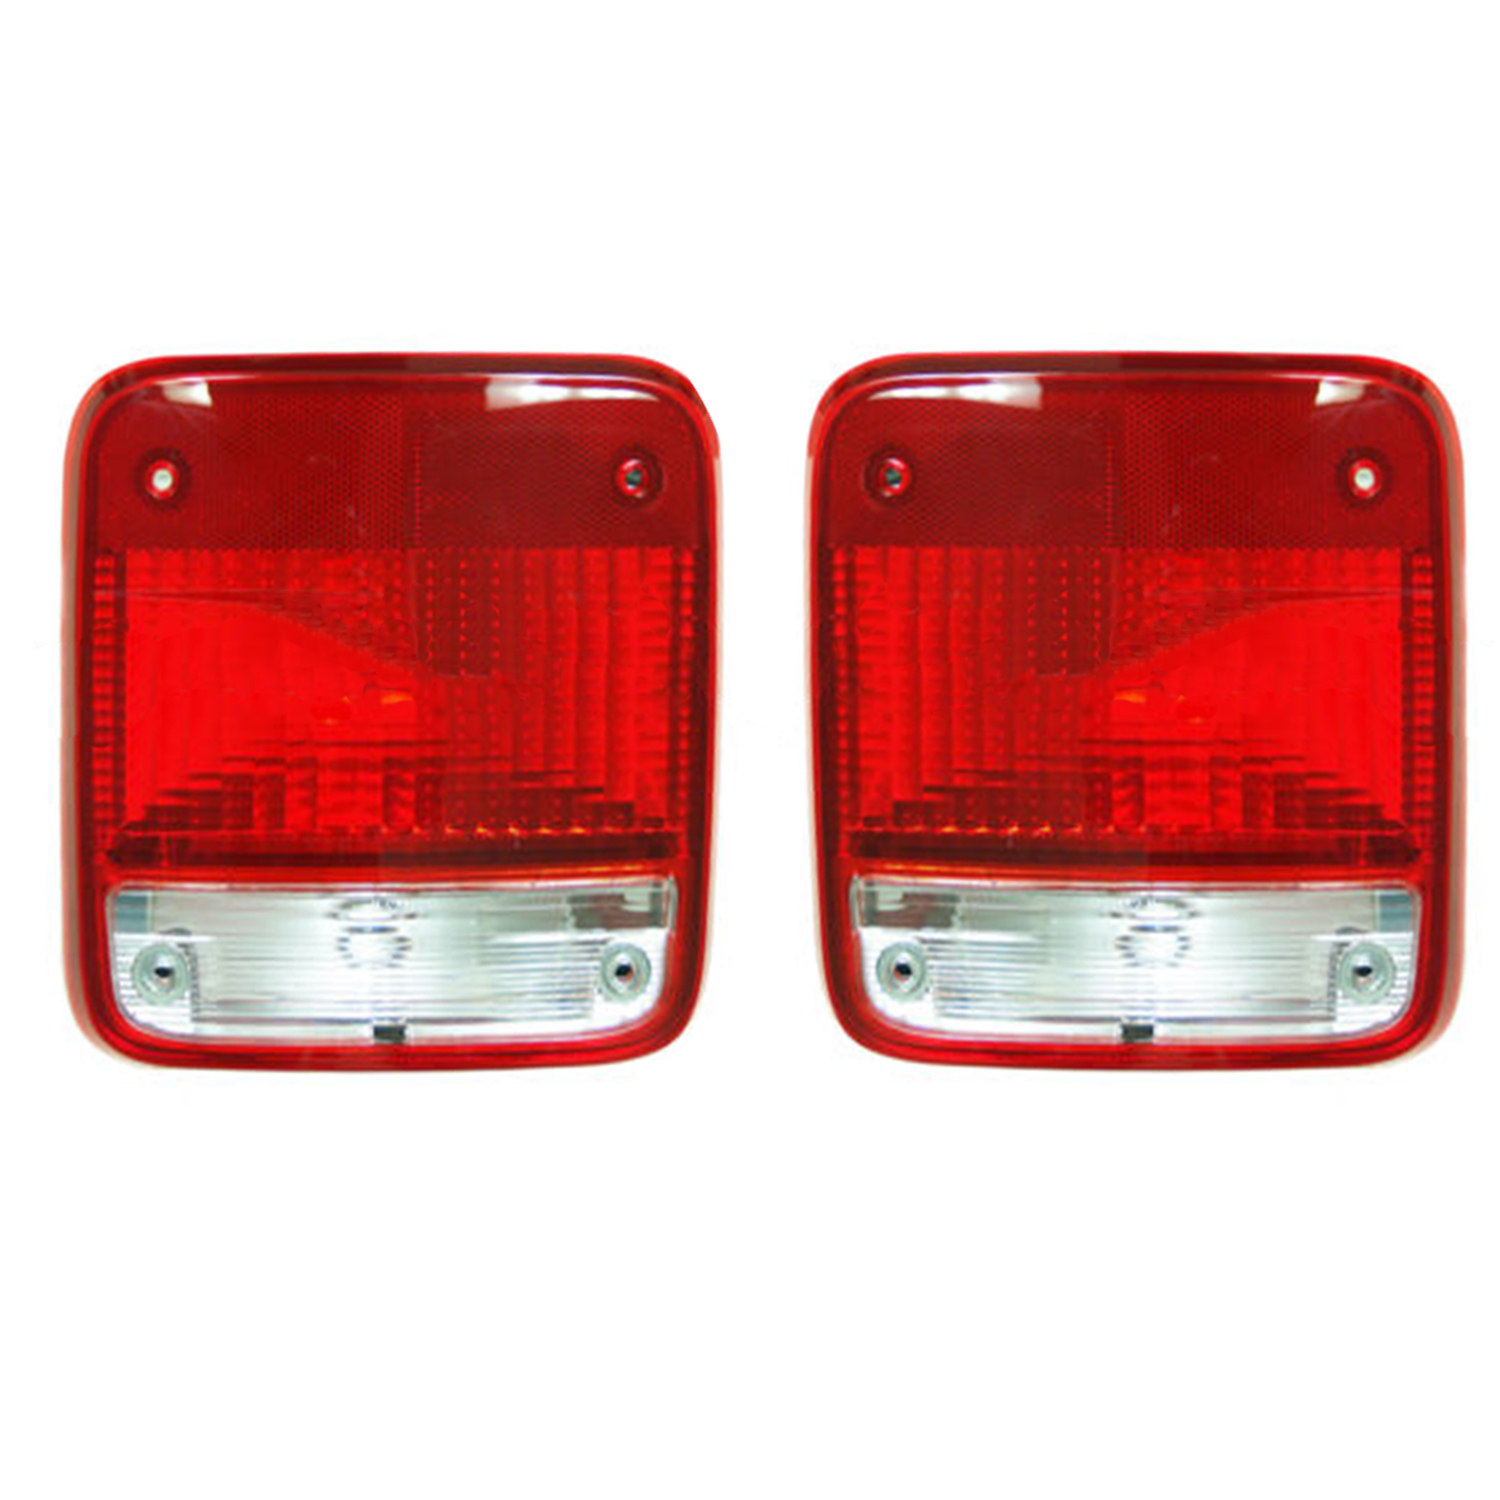 NEW PAIR OF TAIL LIGHTS FITS GMC SAVANA 3500 2500 1500